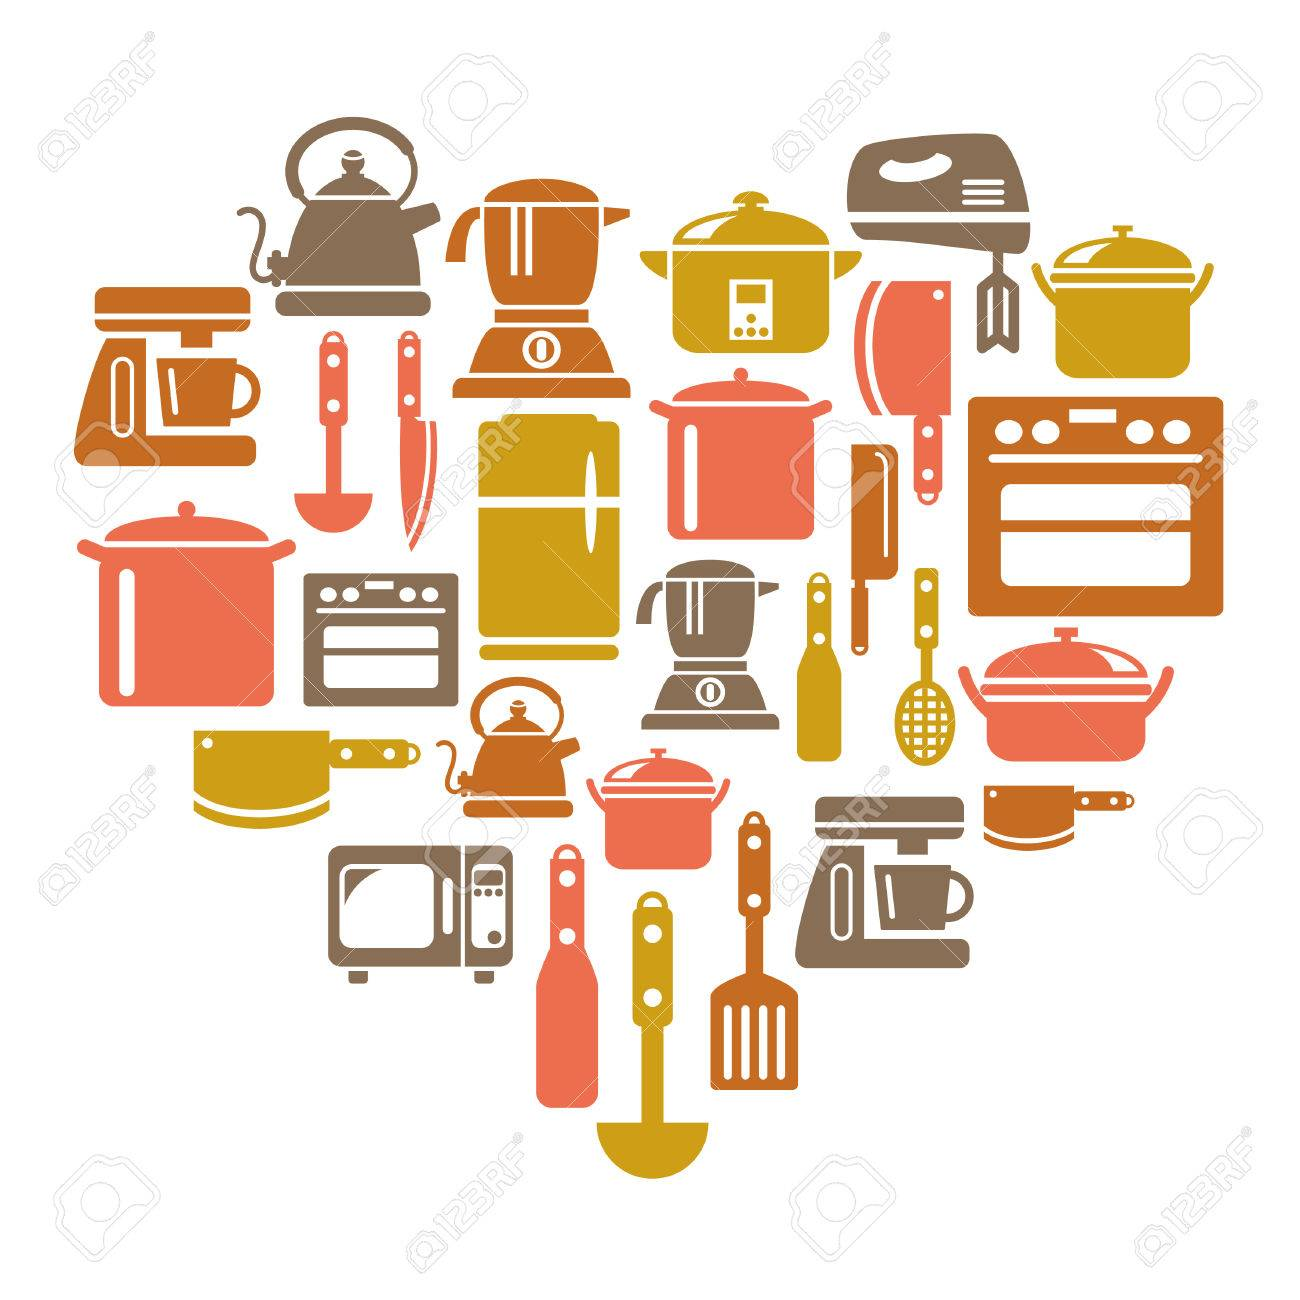 Uncategorized Kitchen Utensils And Appliances kitchen utensils and appliances icons in heart shape royalty free stock vector 30486480